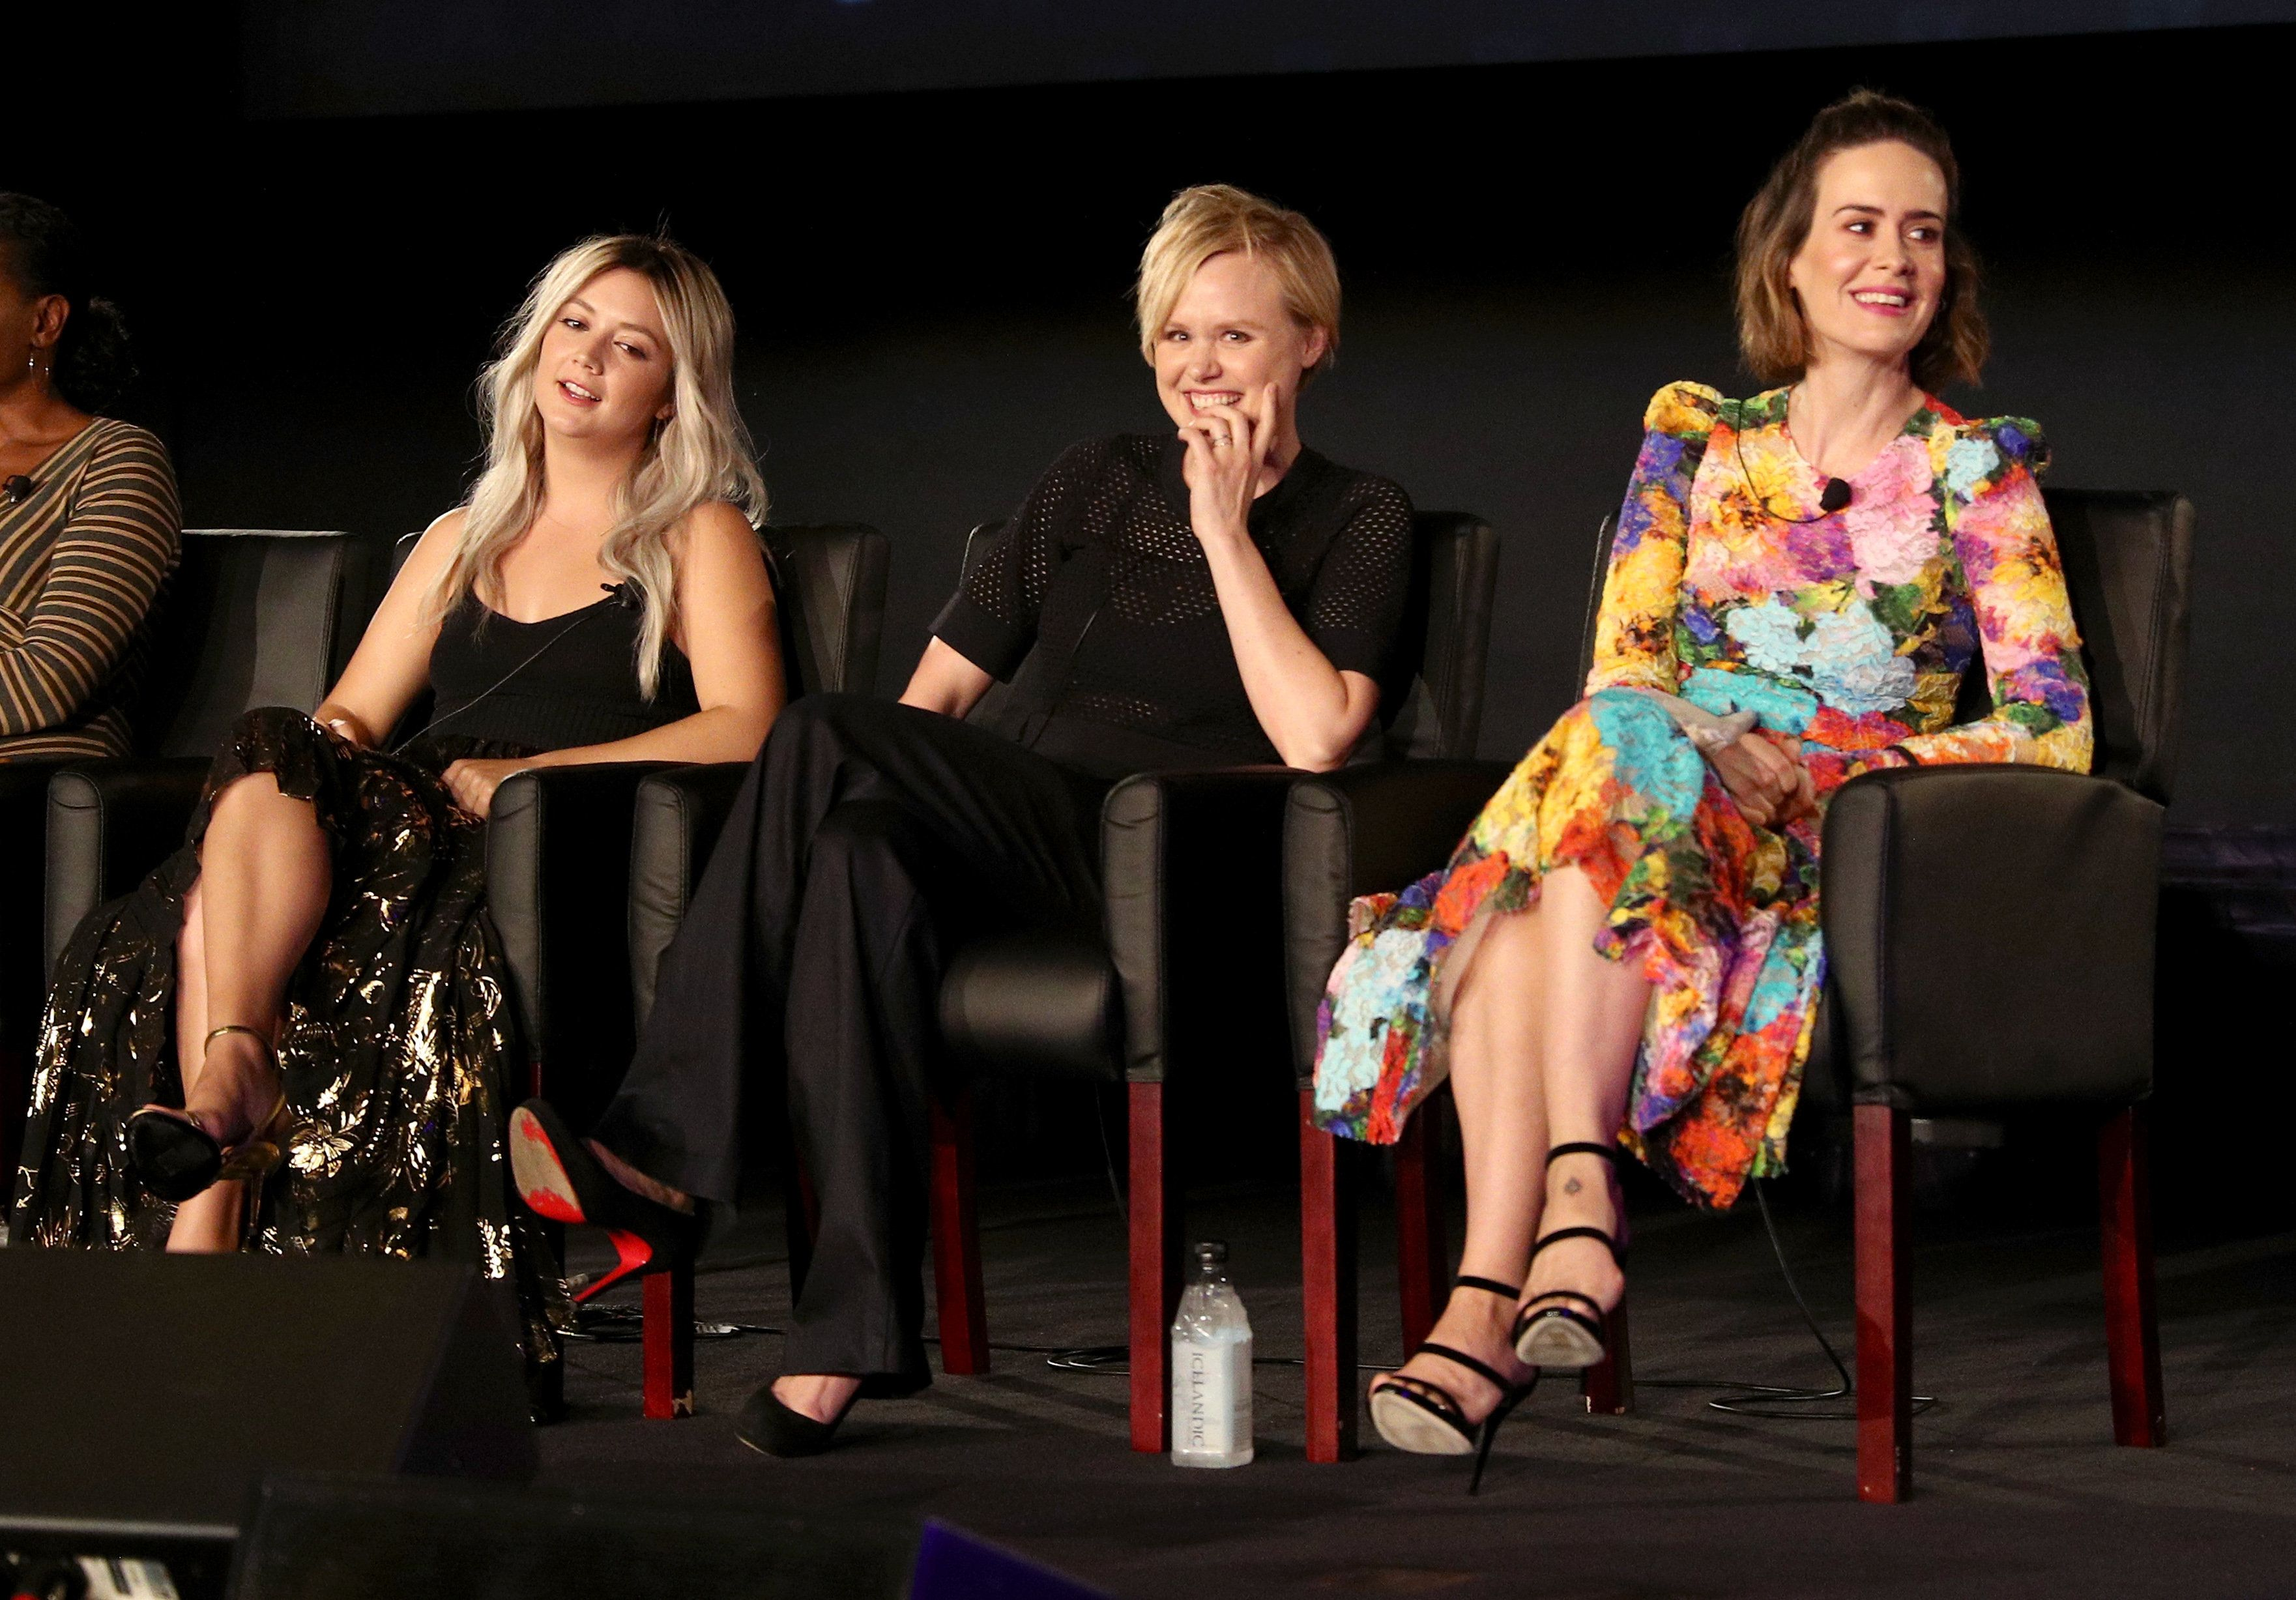 BEVERLY HILLS, CA - AUGUST 09:  (L-R) Actors Billie Lourd, Alison Pill, and Sarah Paulson of 'American Horror Story: Cult' speak onstage during the FX portion of the 2017 Summer Television Critics Association Press Tour at Fox Studios on August 9, 2017 in Los Angeles, California.  (Photo by Frederick M. Brown/Getty Images)